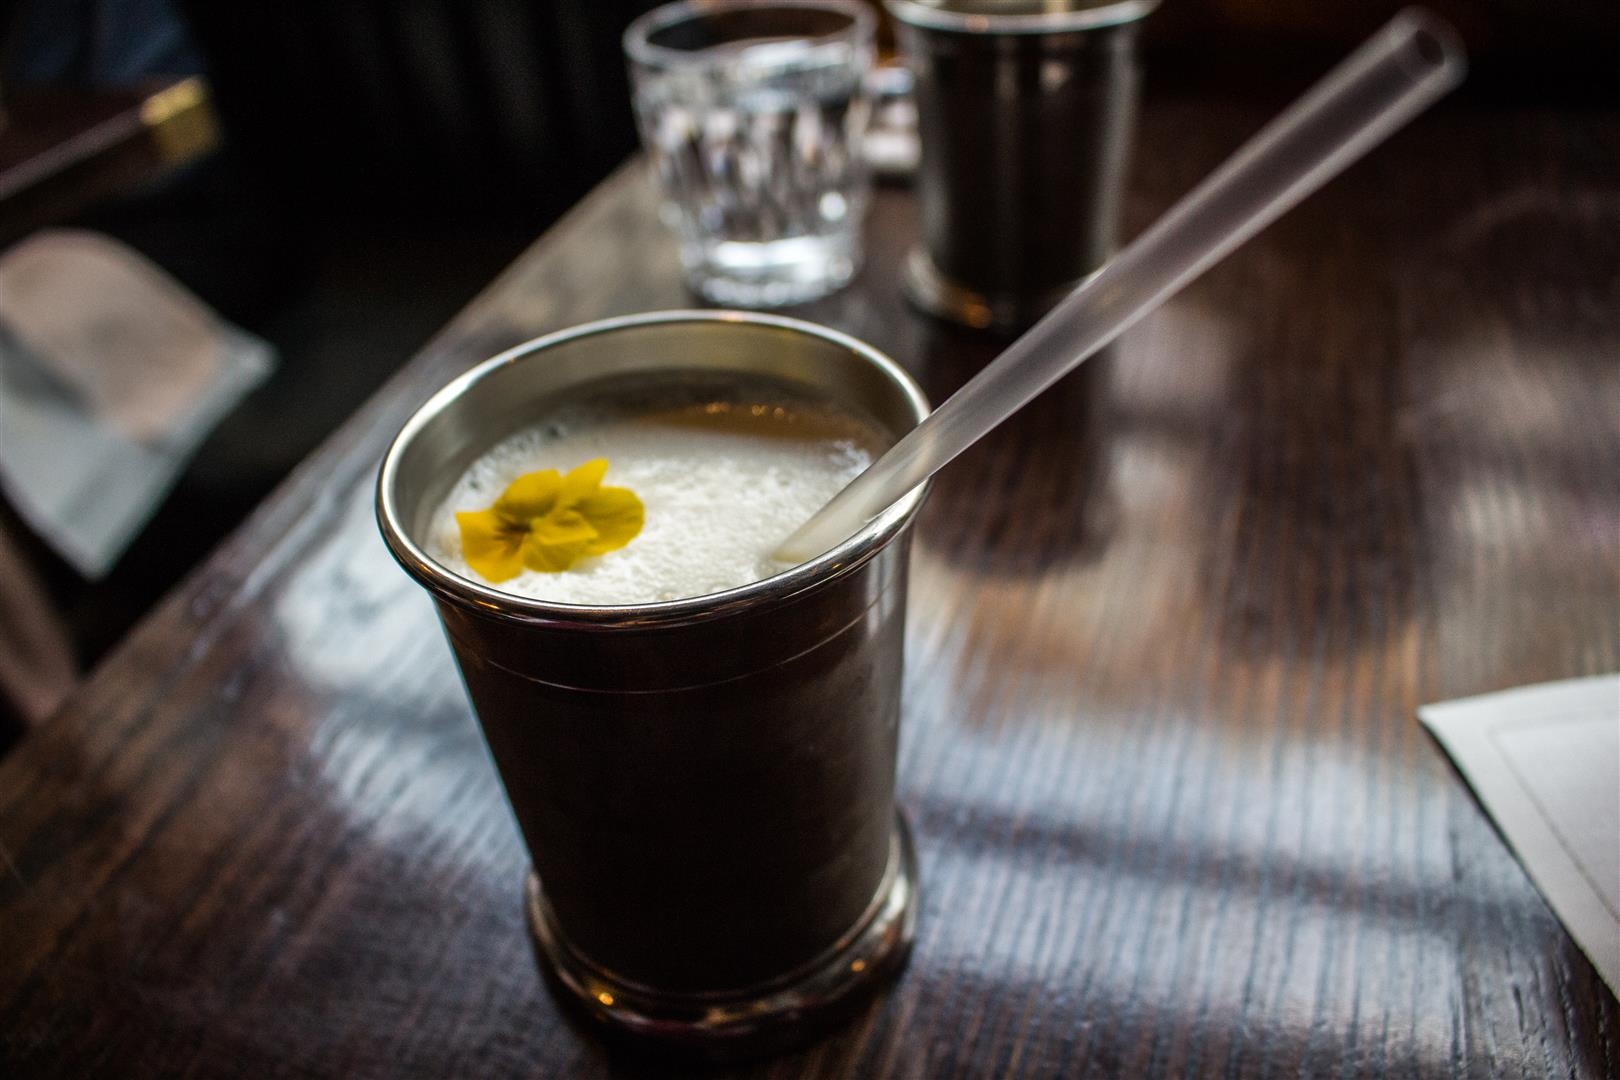 The Sweet Lassi - It is so simple, but they made it elegant!